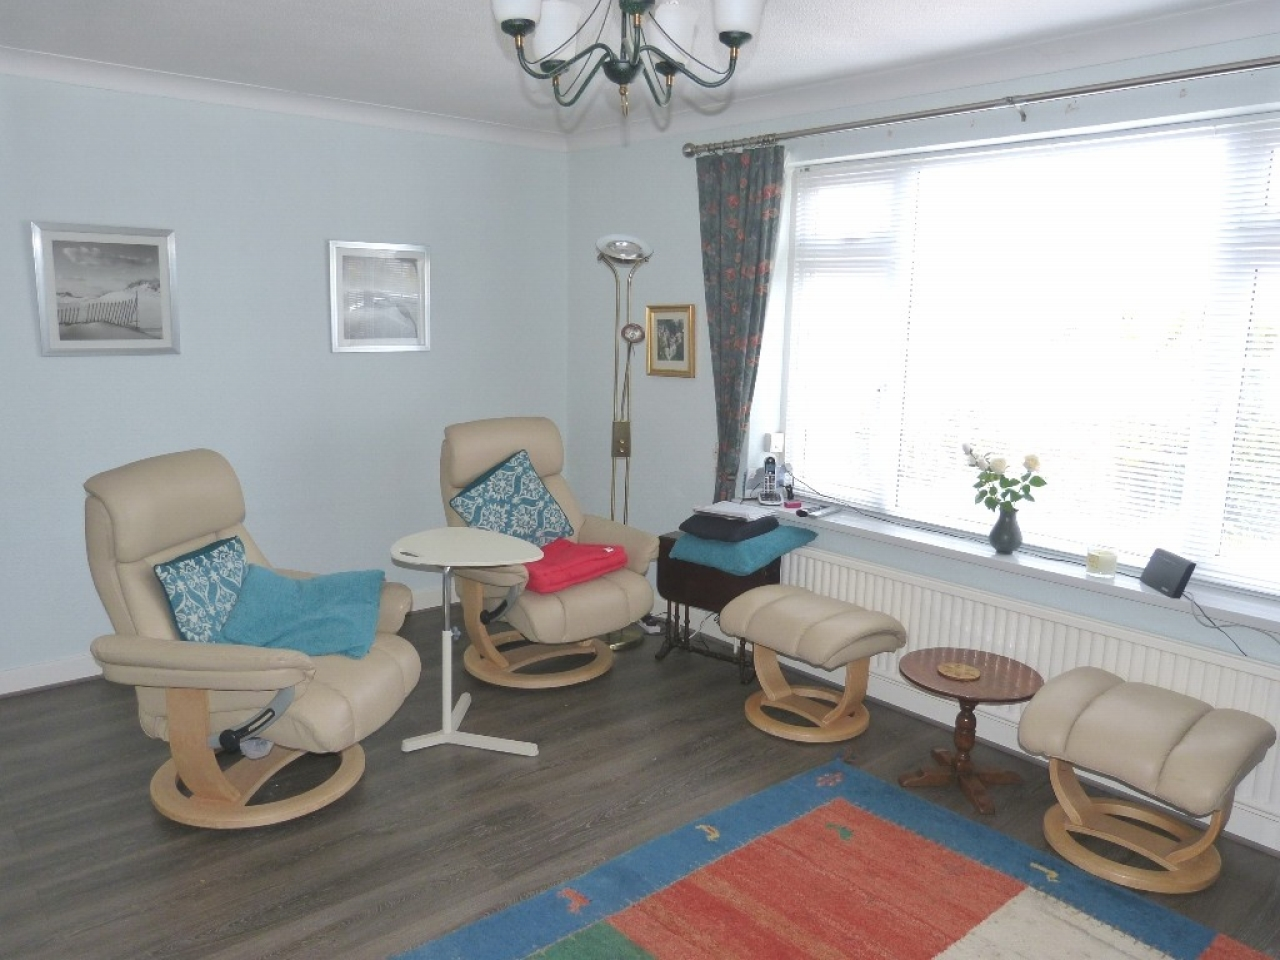 4 bedroom detached bungalow SSTC in Abergele - Photograph 3